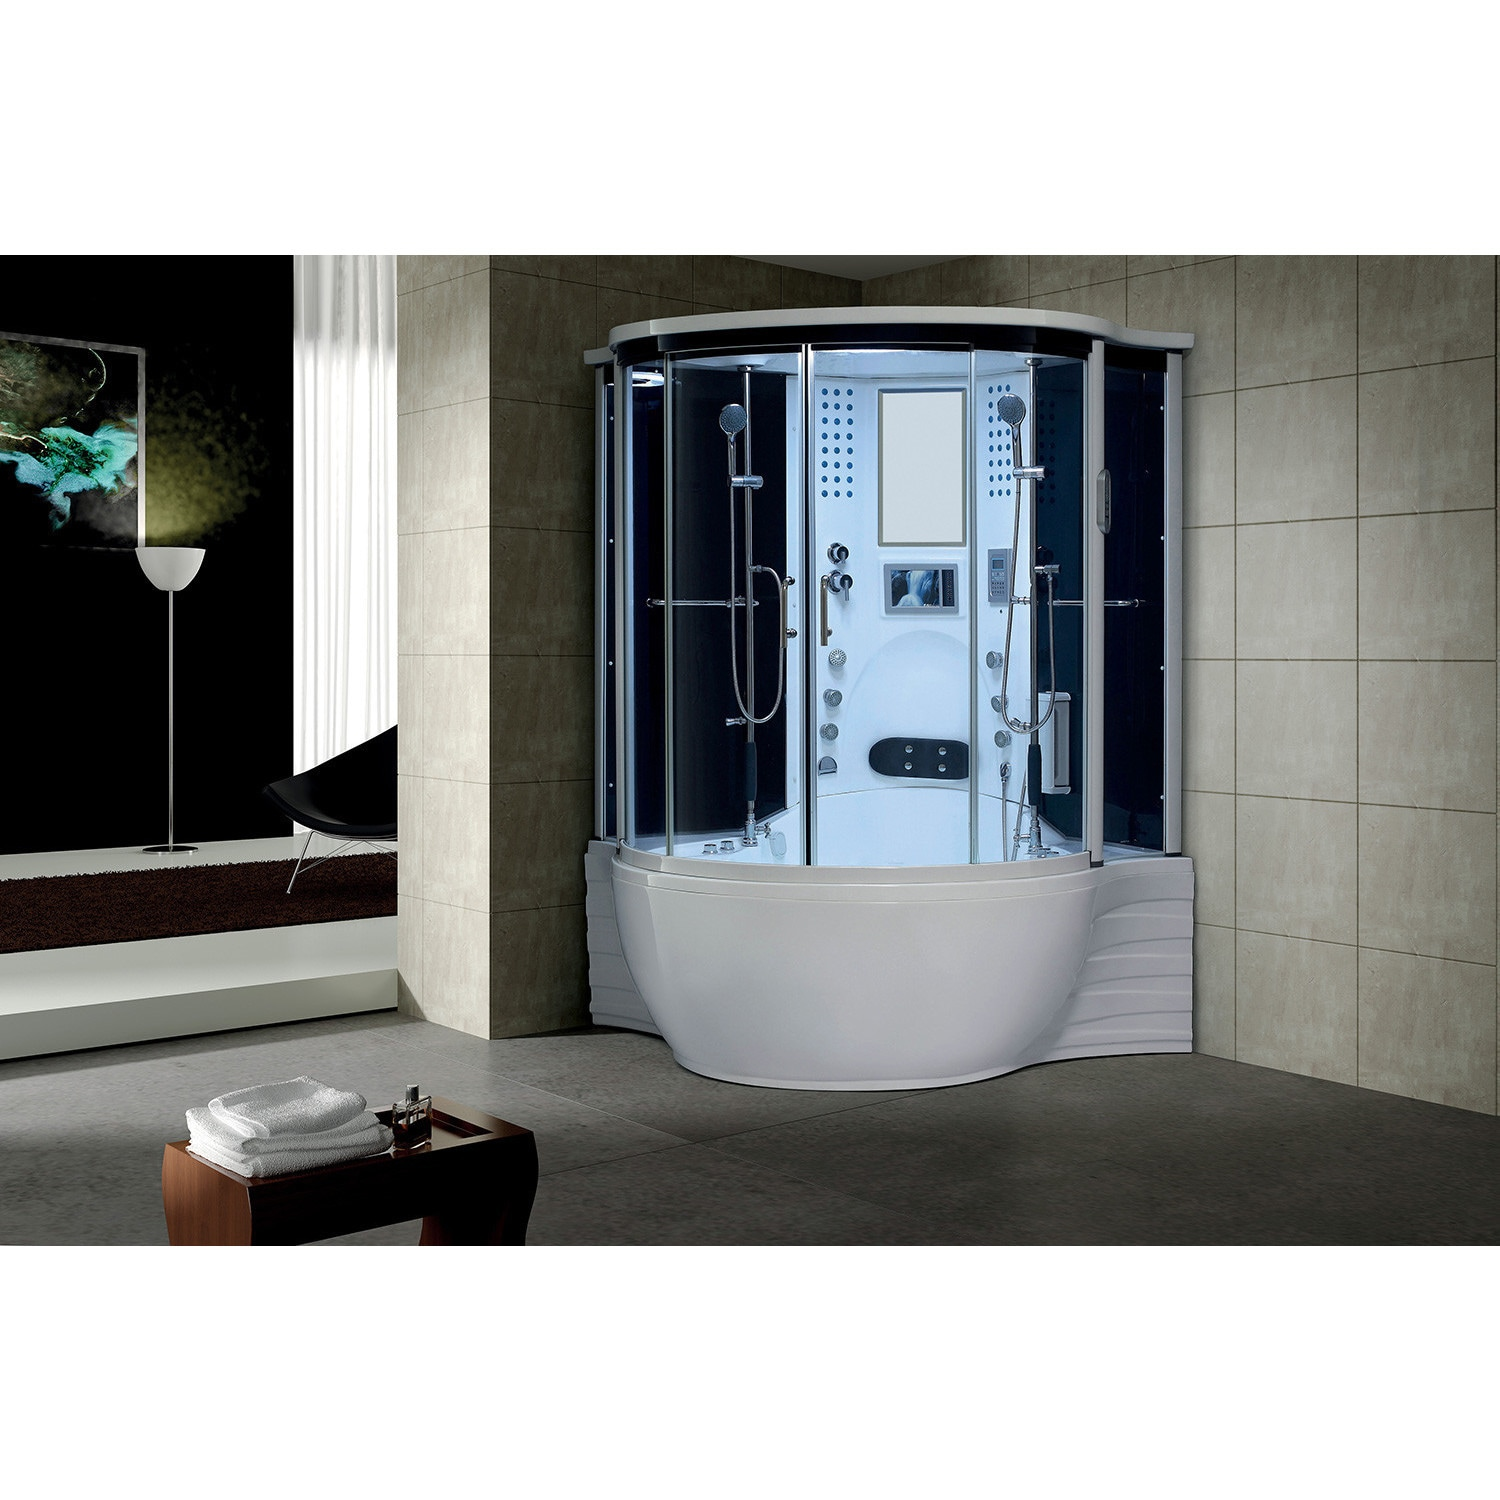 Florence Acrylic/Glass/Stainless Steel Steam Shower Sauna with Whirlpool  Massage Bathtub - Free Shipping Today - Overstock.com - 18863788